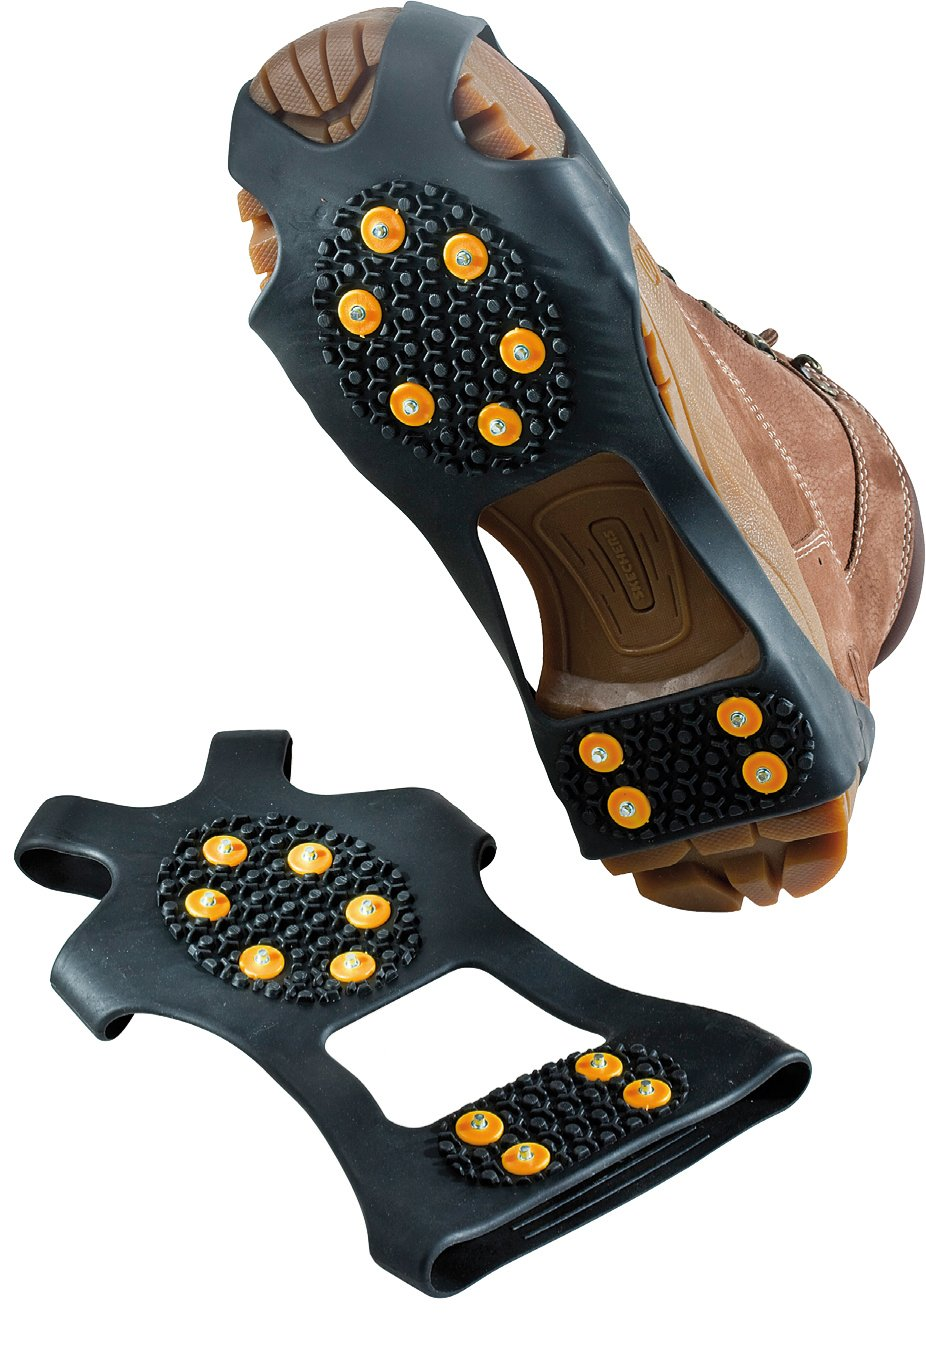 Alpenheat Grip Crampons anti-verglas